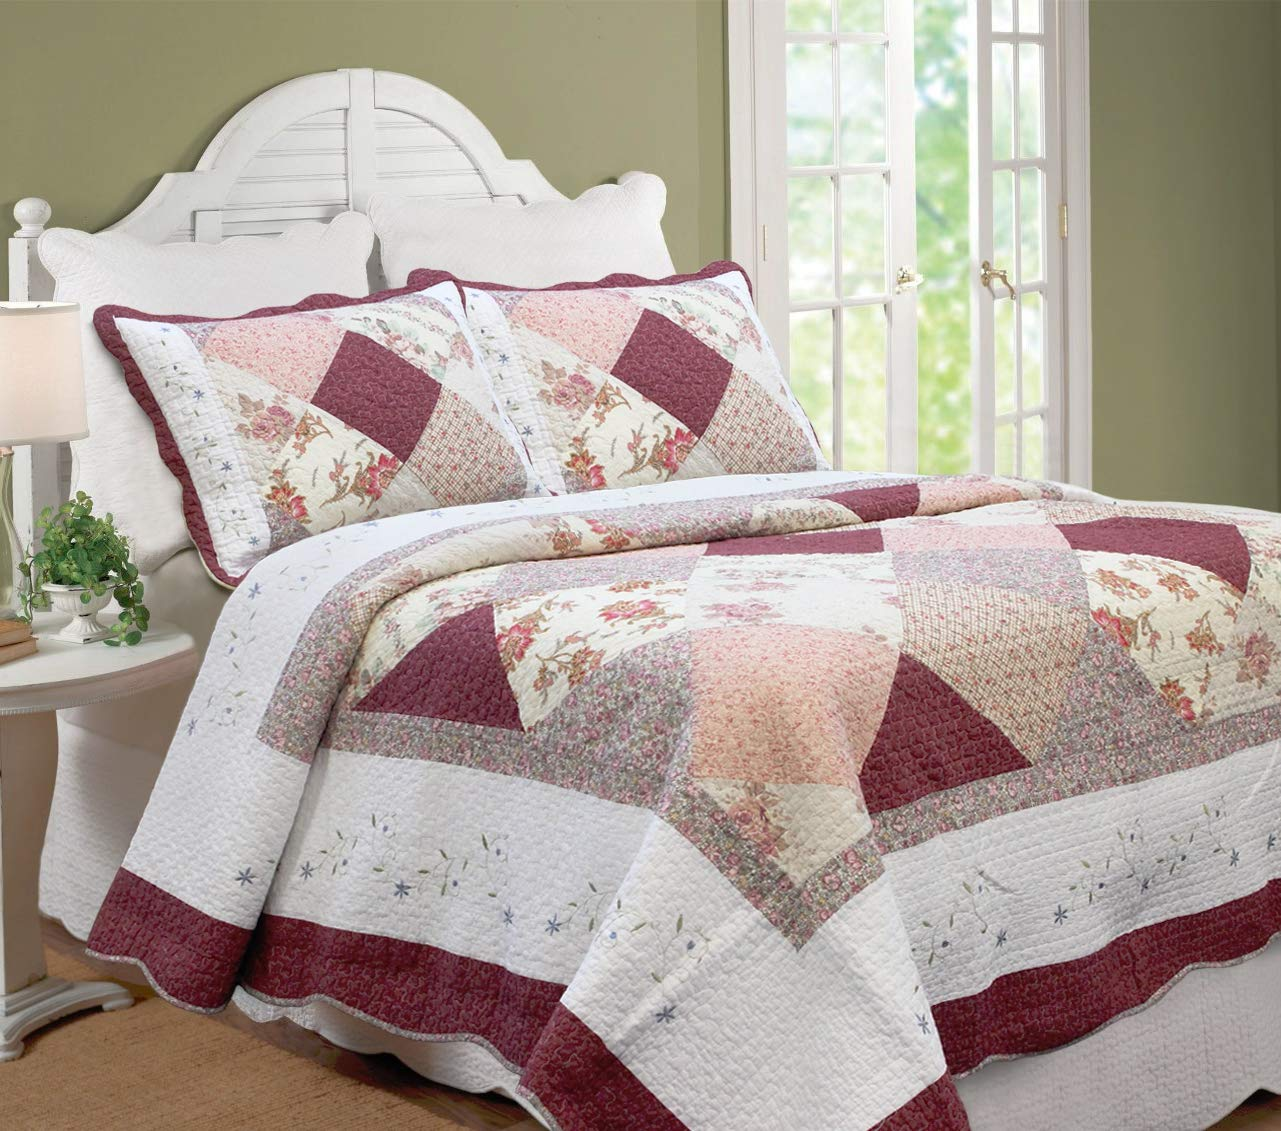 Reversible Coverlet Bedspread for Women (Georgia, Queen - 3 Piece)